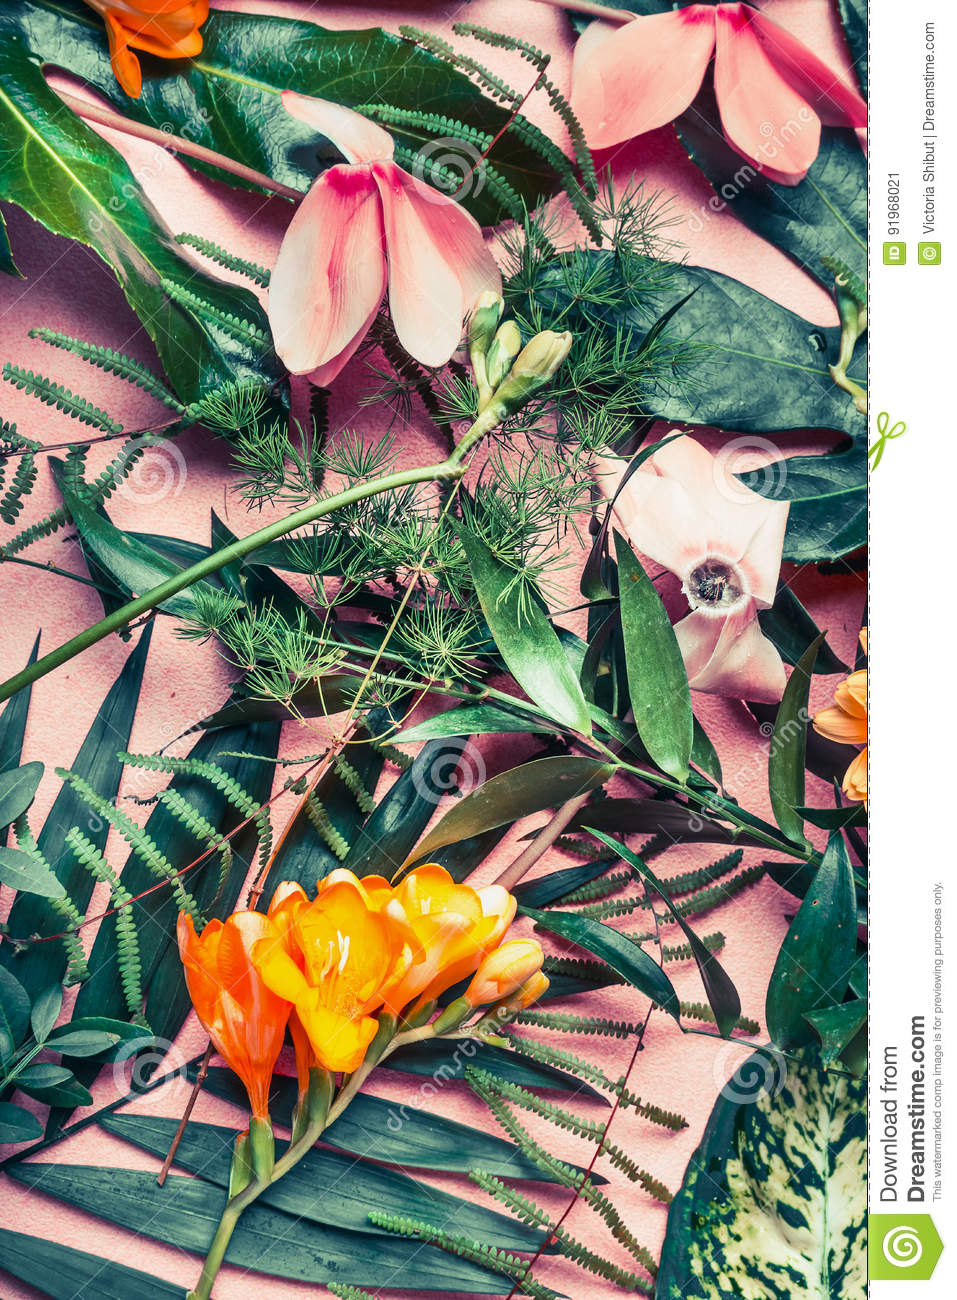 Cute Floral Laptop Wallpapers Various Green Tropical Leaves And Exotic Flowers Nature